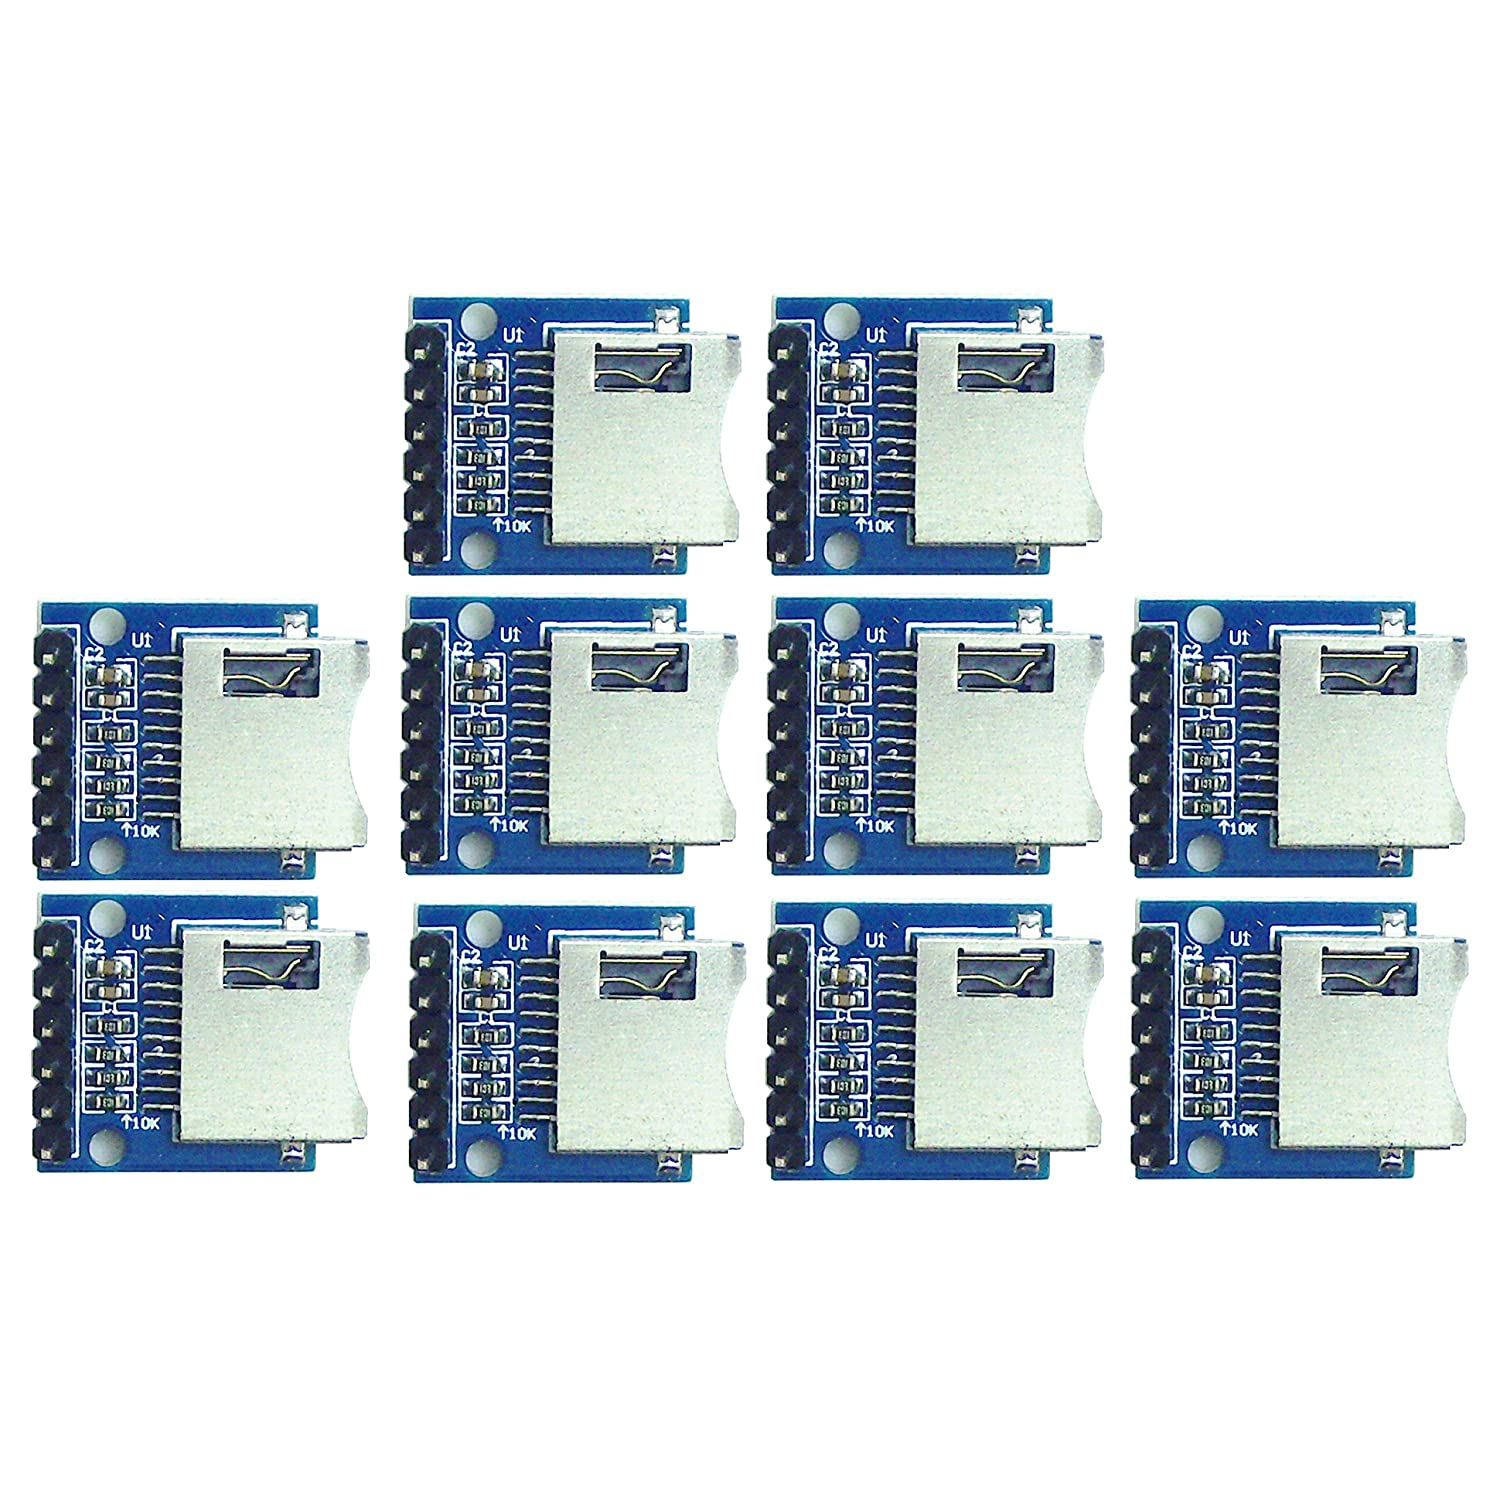 10pcs Micro SD Memory Card Module for Additional Data Storage Capacity Microcontroller Projects from Optimus Electric